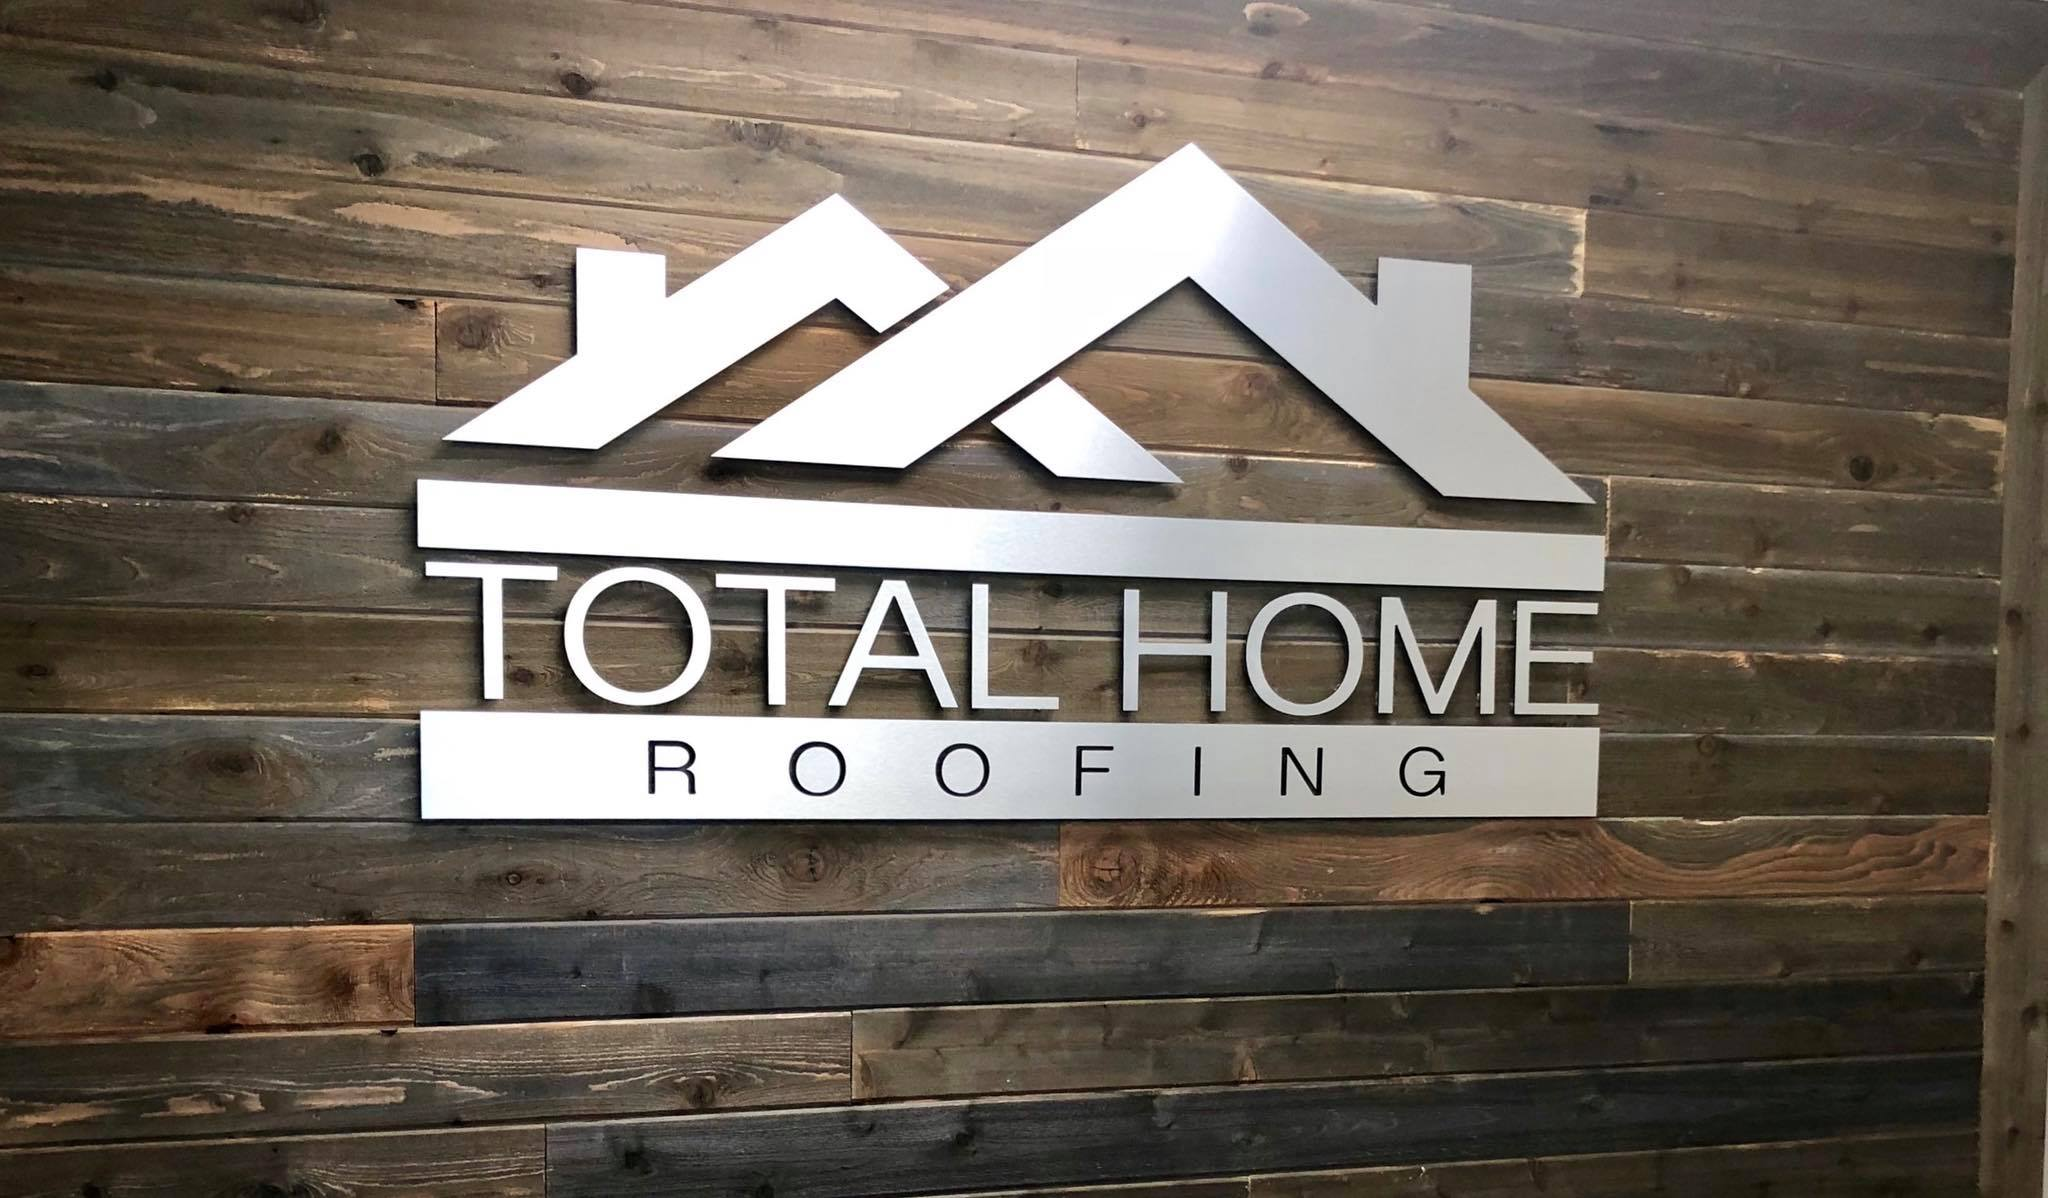 Fastest-Growing Re-Roofing Company For Third Consecutive Year